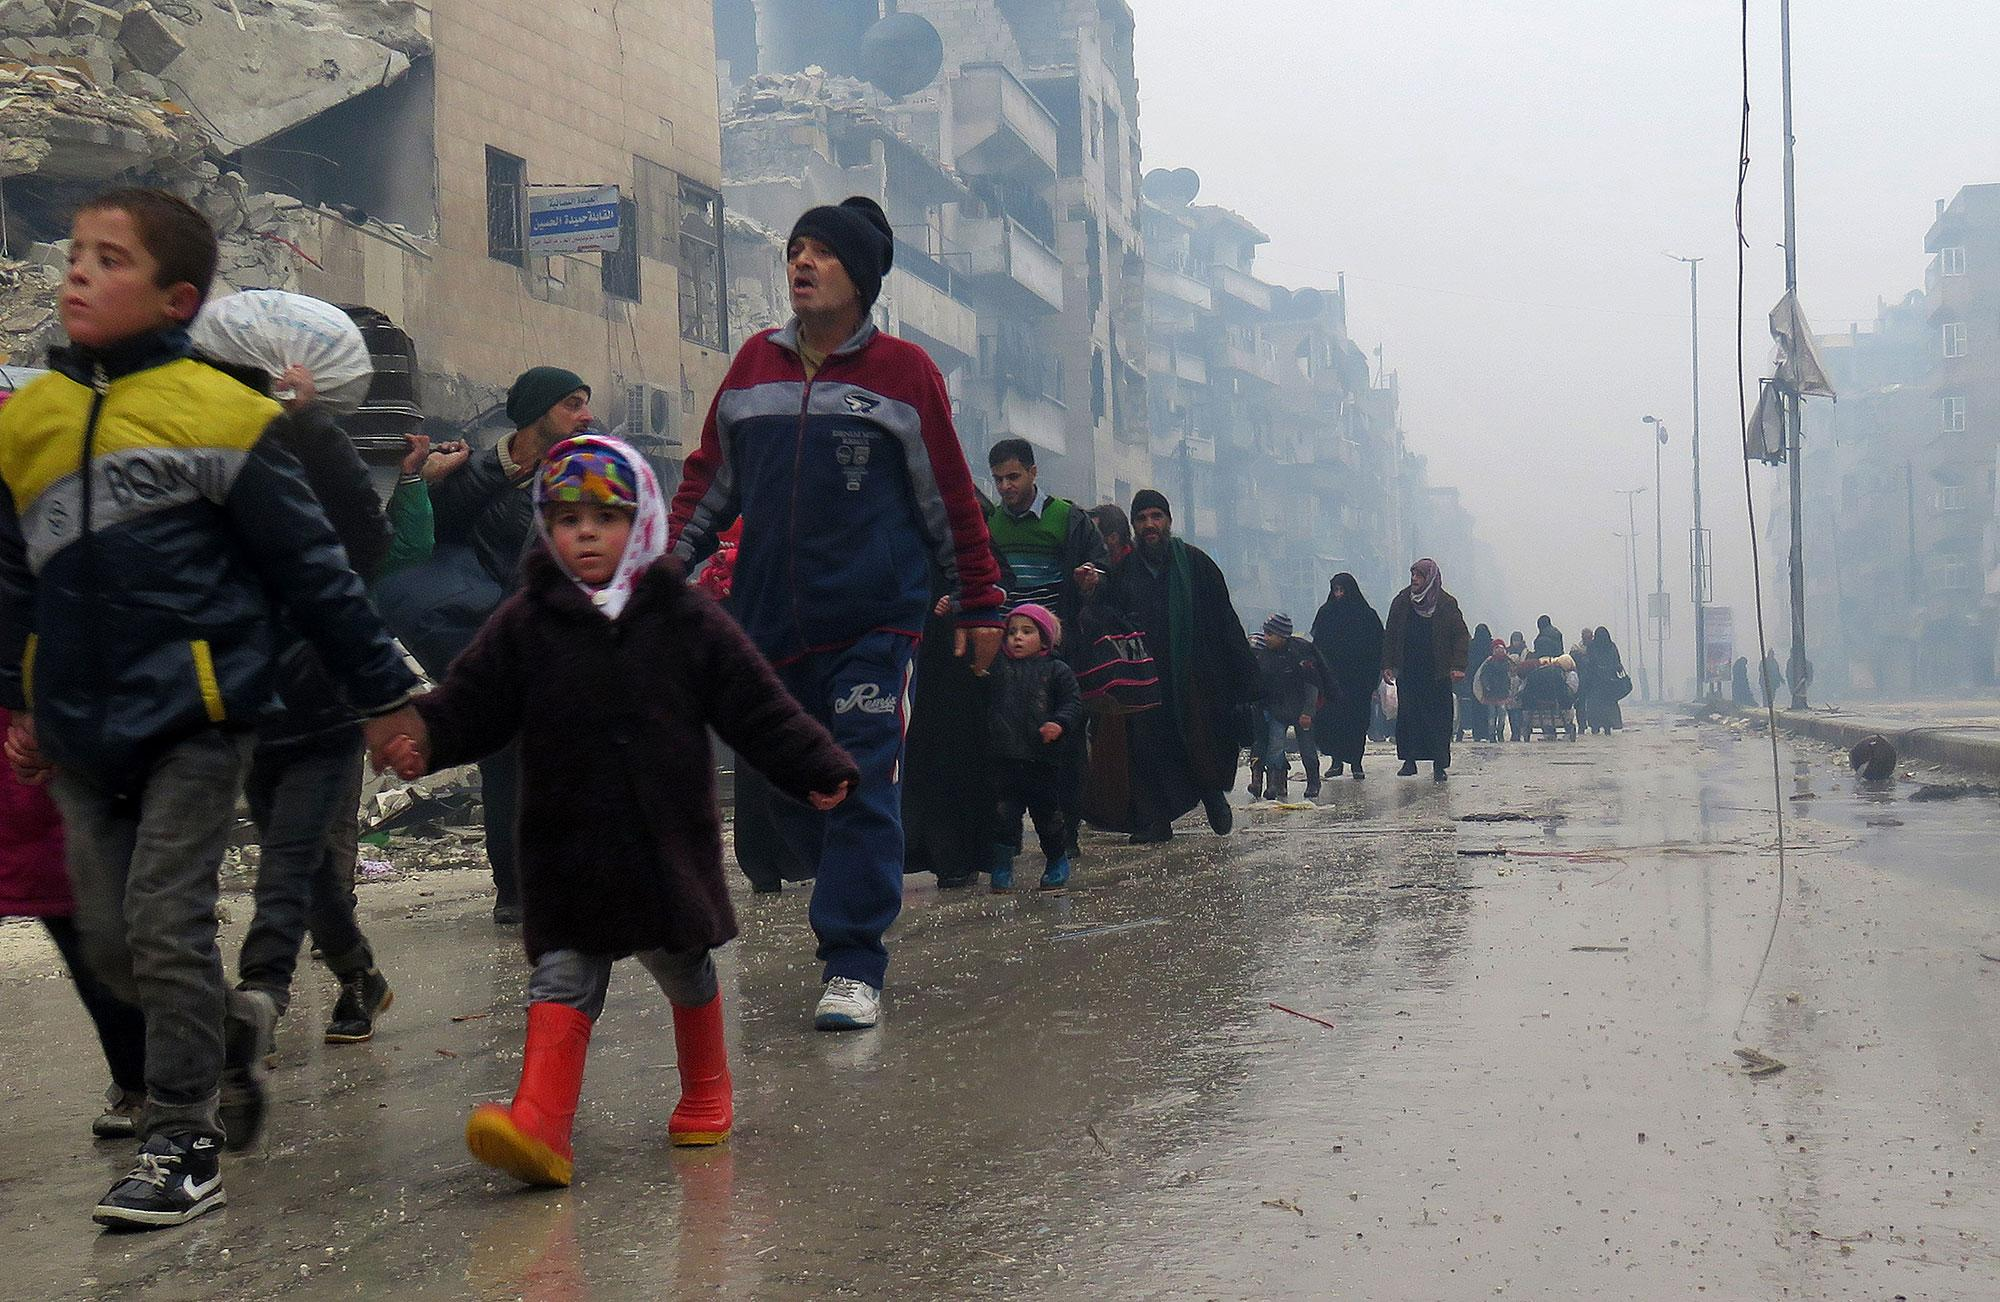 <p>Syrian residents, fleeing violence in the restive Bustan al-Qasr neighbourhood, arrive in Aleppo's Fardos neighbourhood on December 13, 2016, after regime troops retook the area from rebel fighters. Syrian rebels withdrew from six more neighbourhoods in their one-time bastion of east Aleppo in the face of advancing government troops, the Syrian Observatory for Human Rights said. (Stringer/AFP/Getty Images) </p>